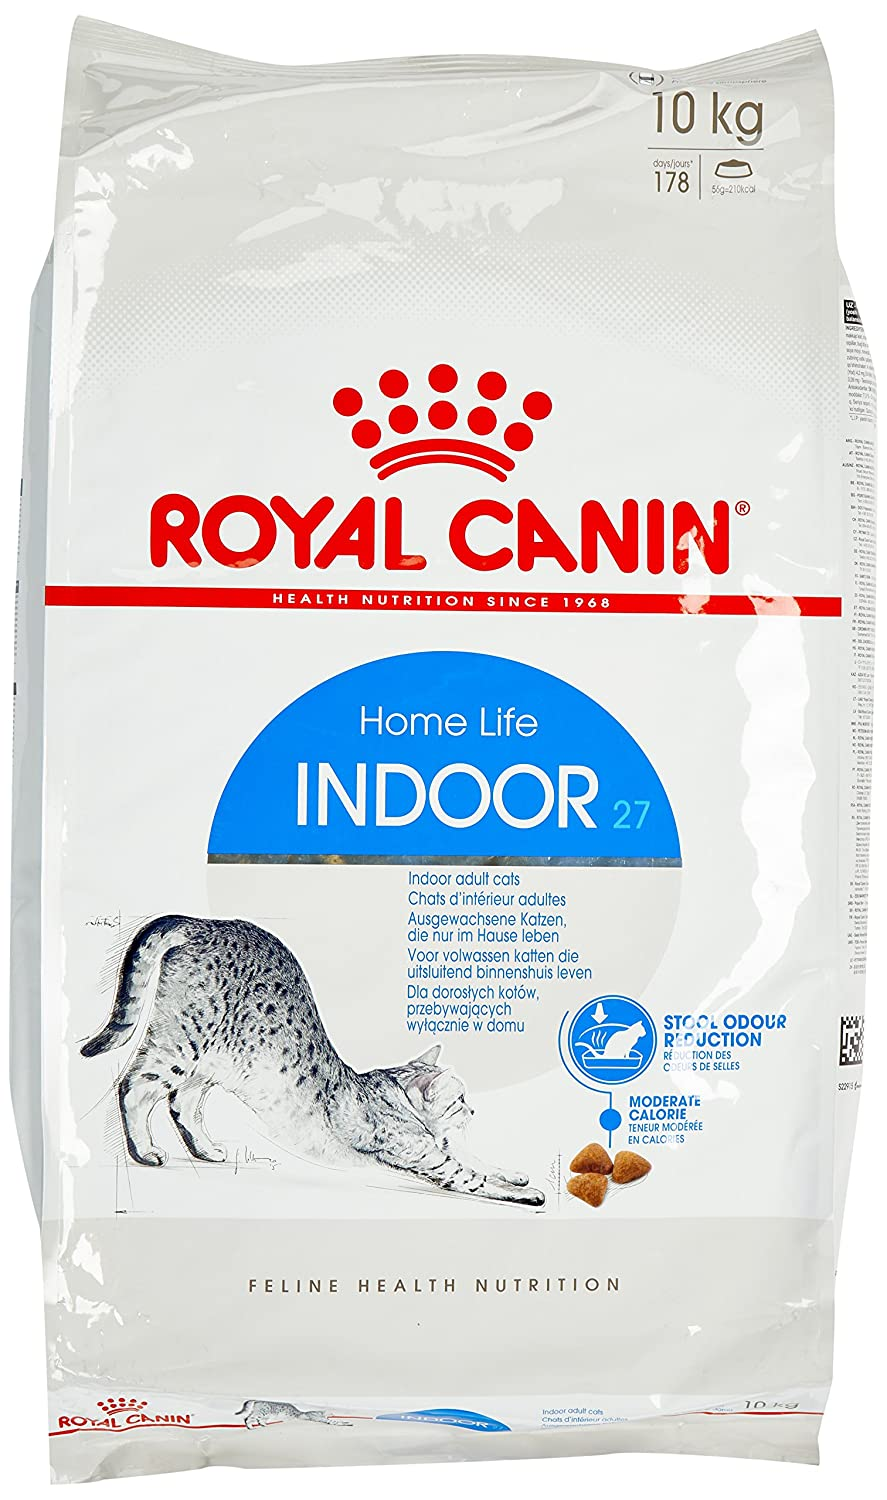 Royal Canin C-584990 Indoor +7 - 1.5 Kg: Amazon.es: Productos para mascotas